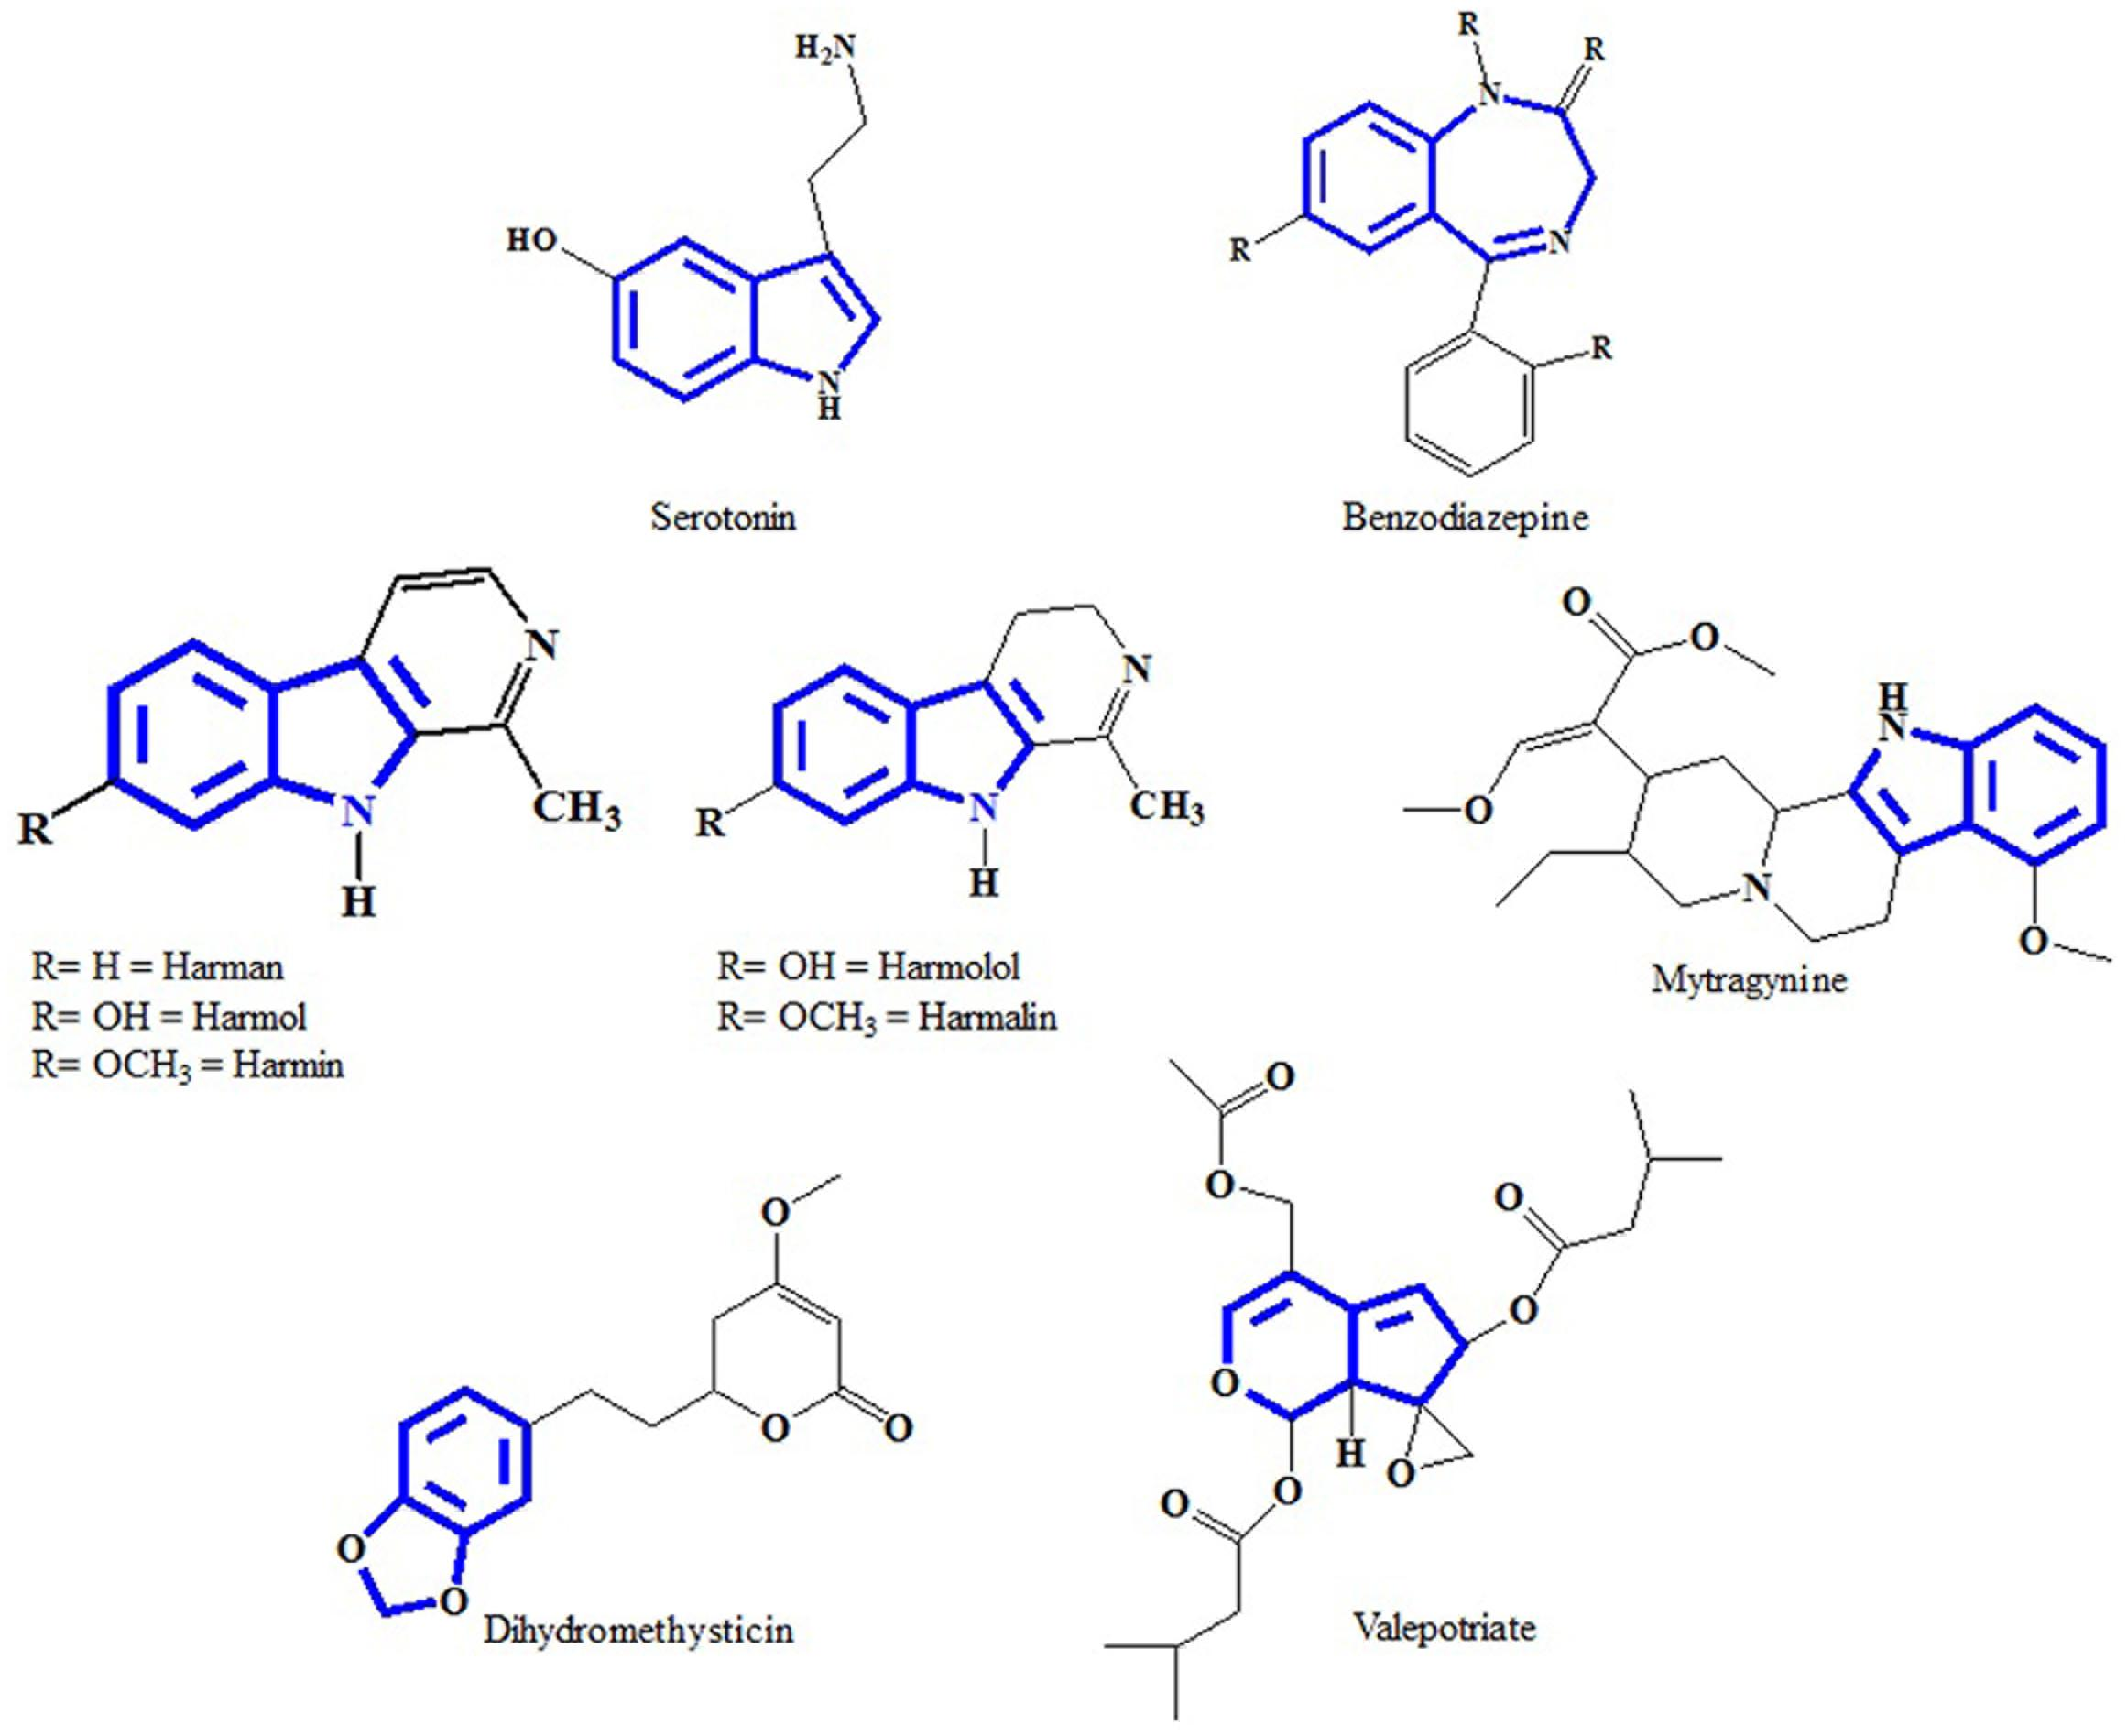 Frontiers | Indole Alkaloids from Plants as Potential Leads